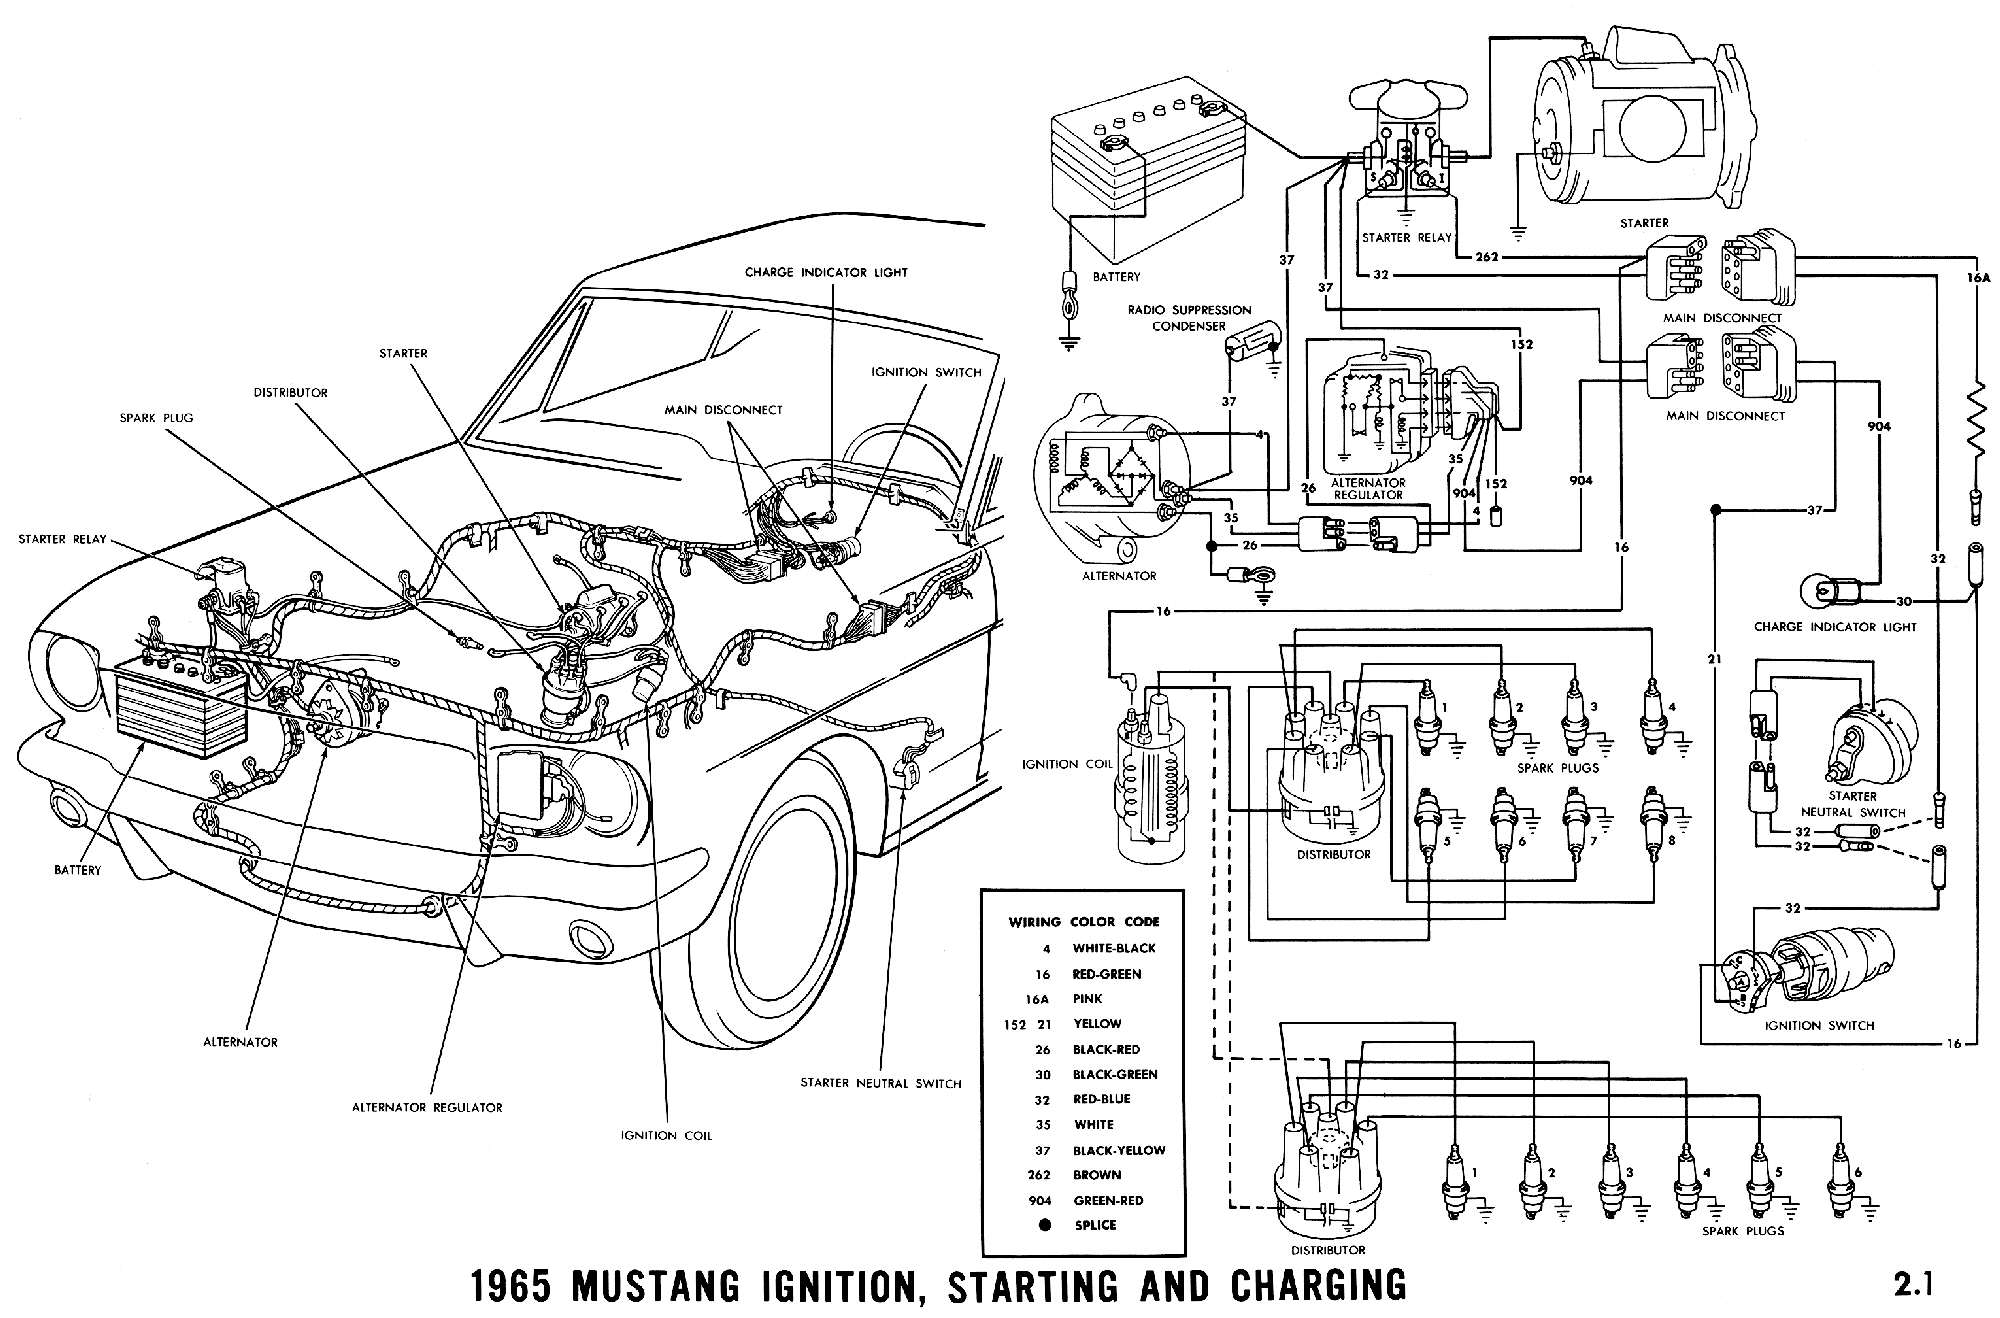 1965c 1965 mustang wiring diagrams average joe restoration 1965 ford mustang wiring diagrams at panicattacktreatment.co